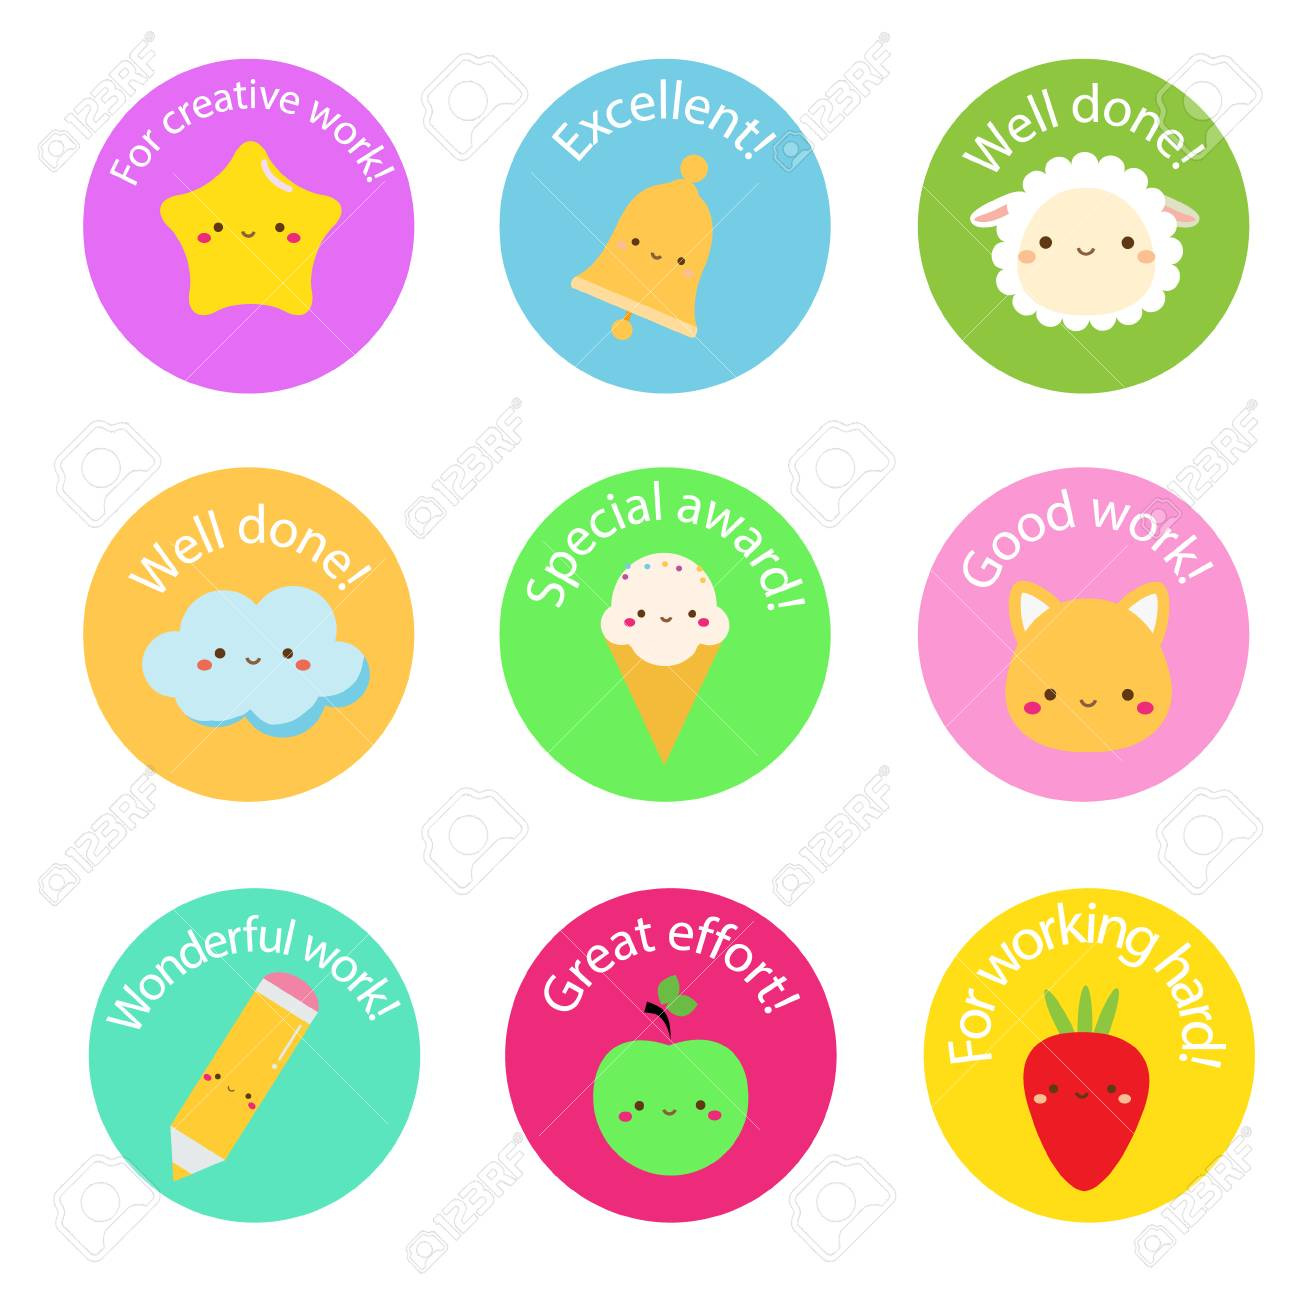 School labels for teachers award stickers for pupils kids with cute symbols and motivational